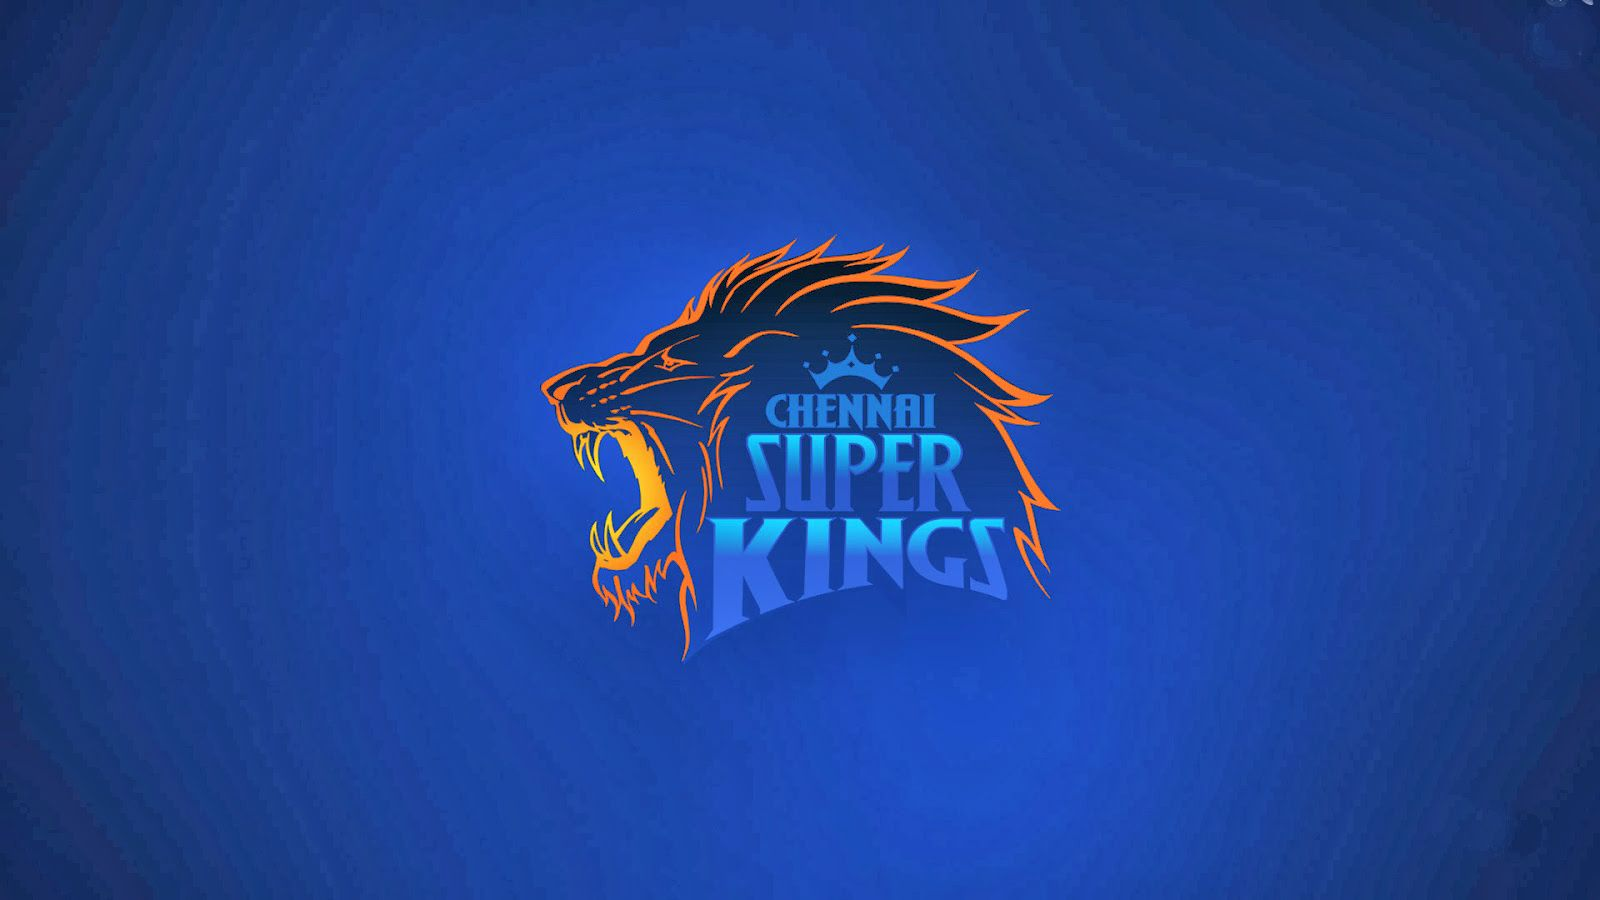 Chennai Super Kings HD Logo Wallpaper